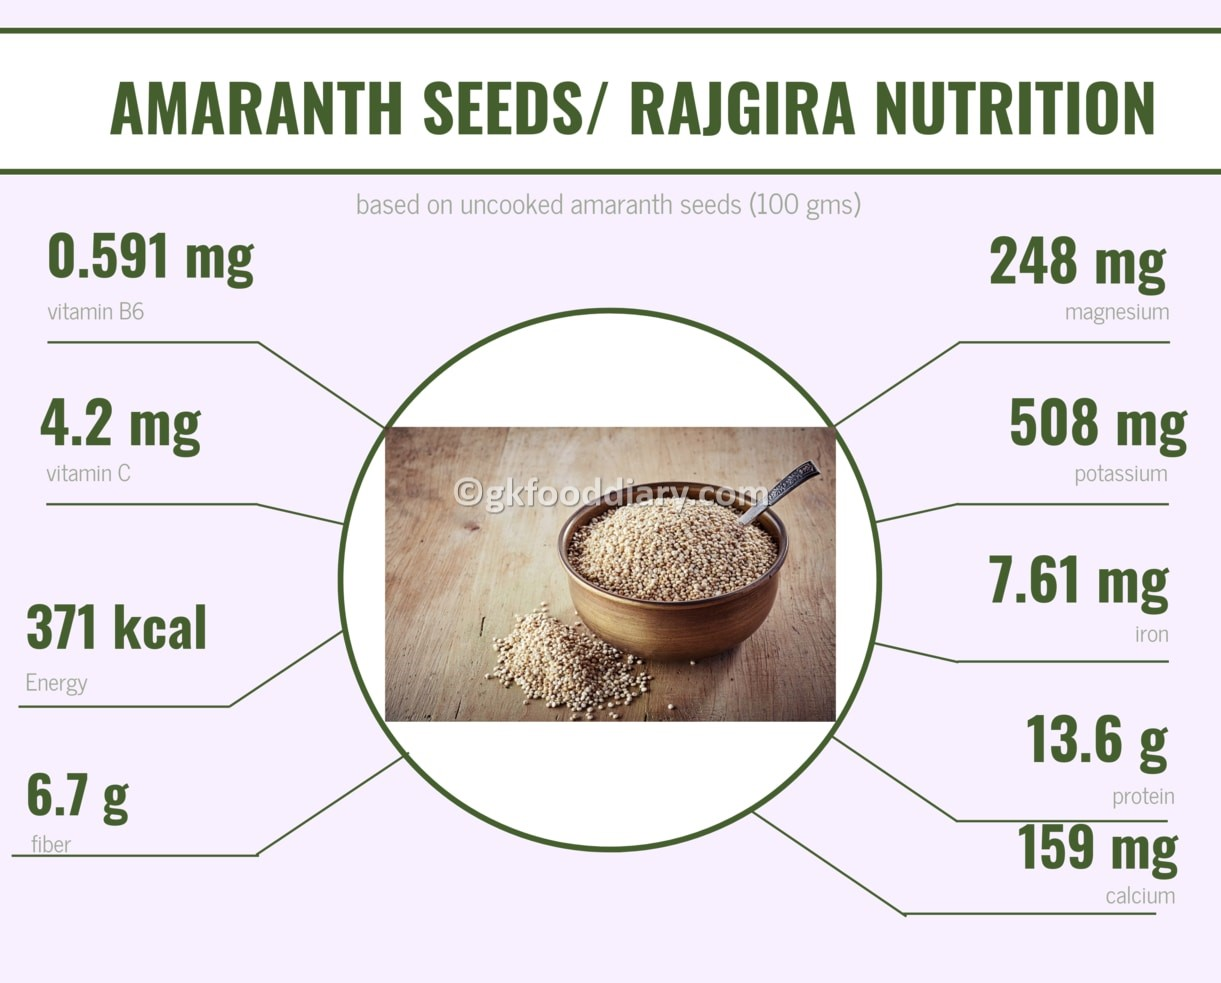 Amaranth Seeds - Rajgira Nutrition